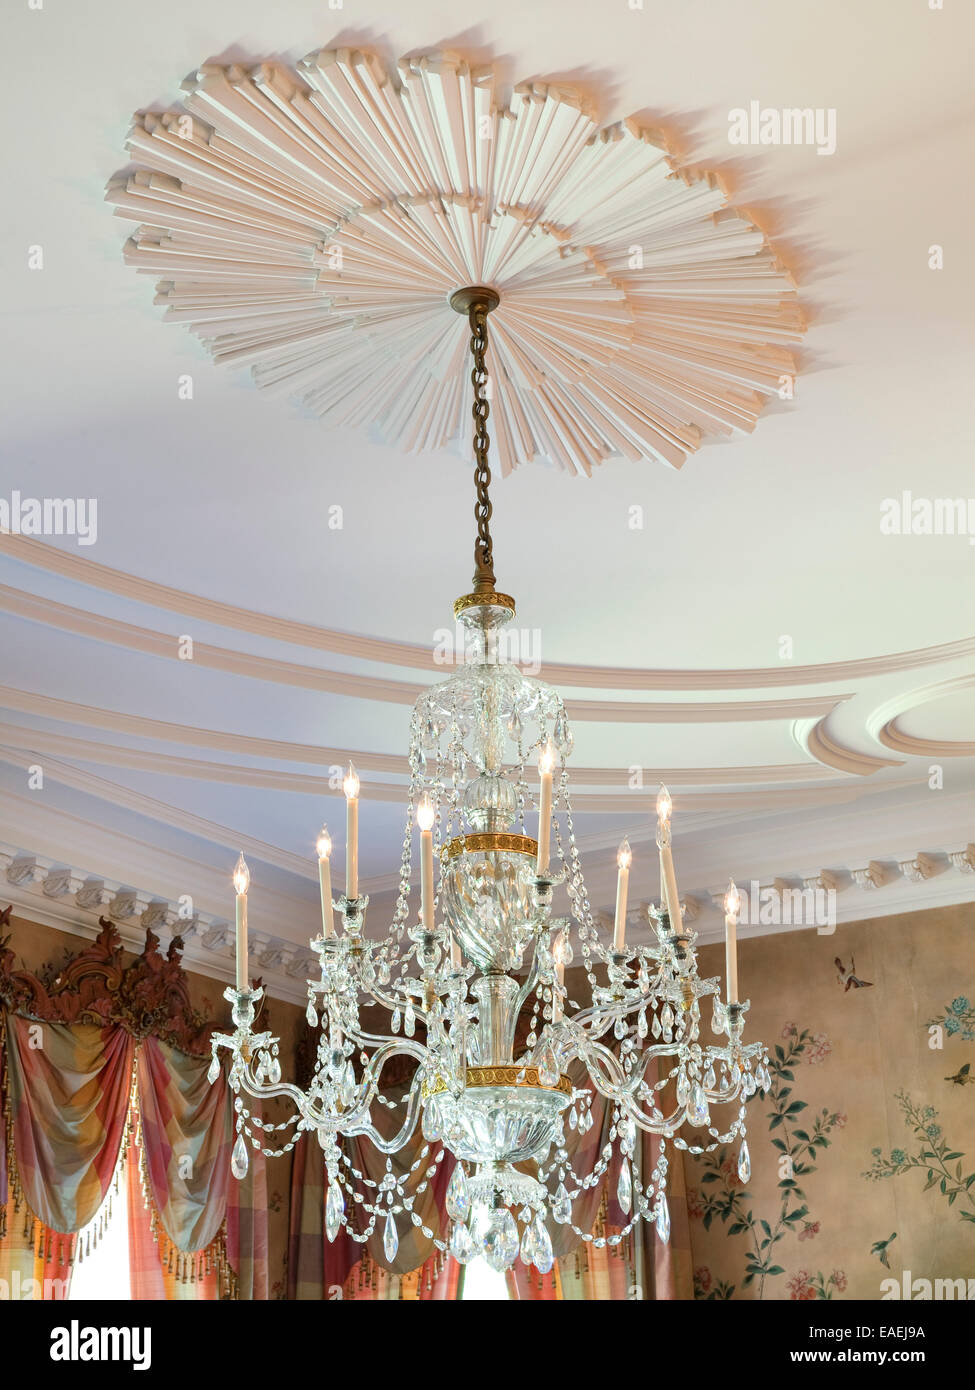 Interior With Crystal Chandelier Stock Photos & Interior With ...